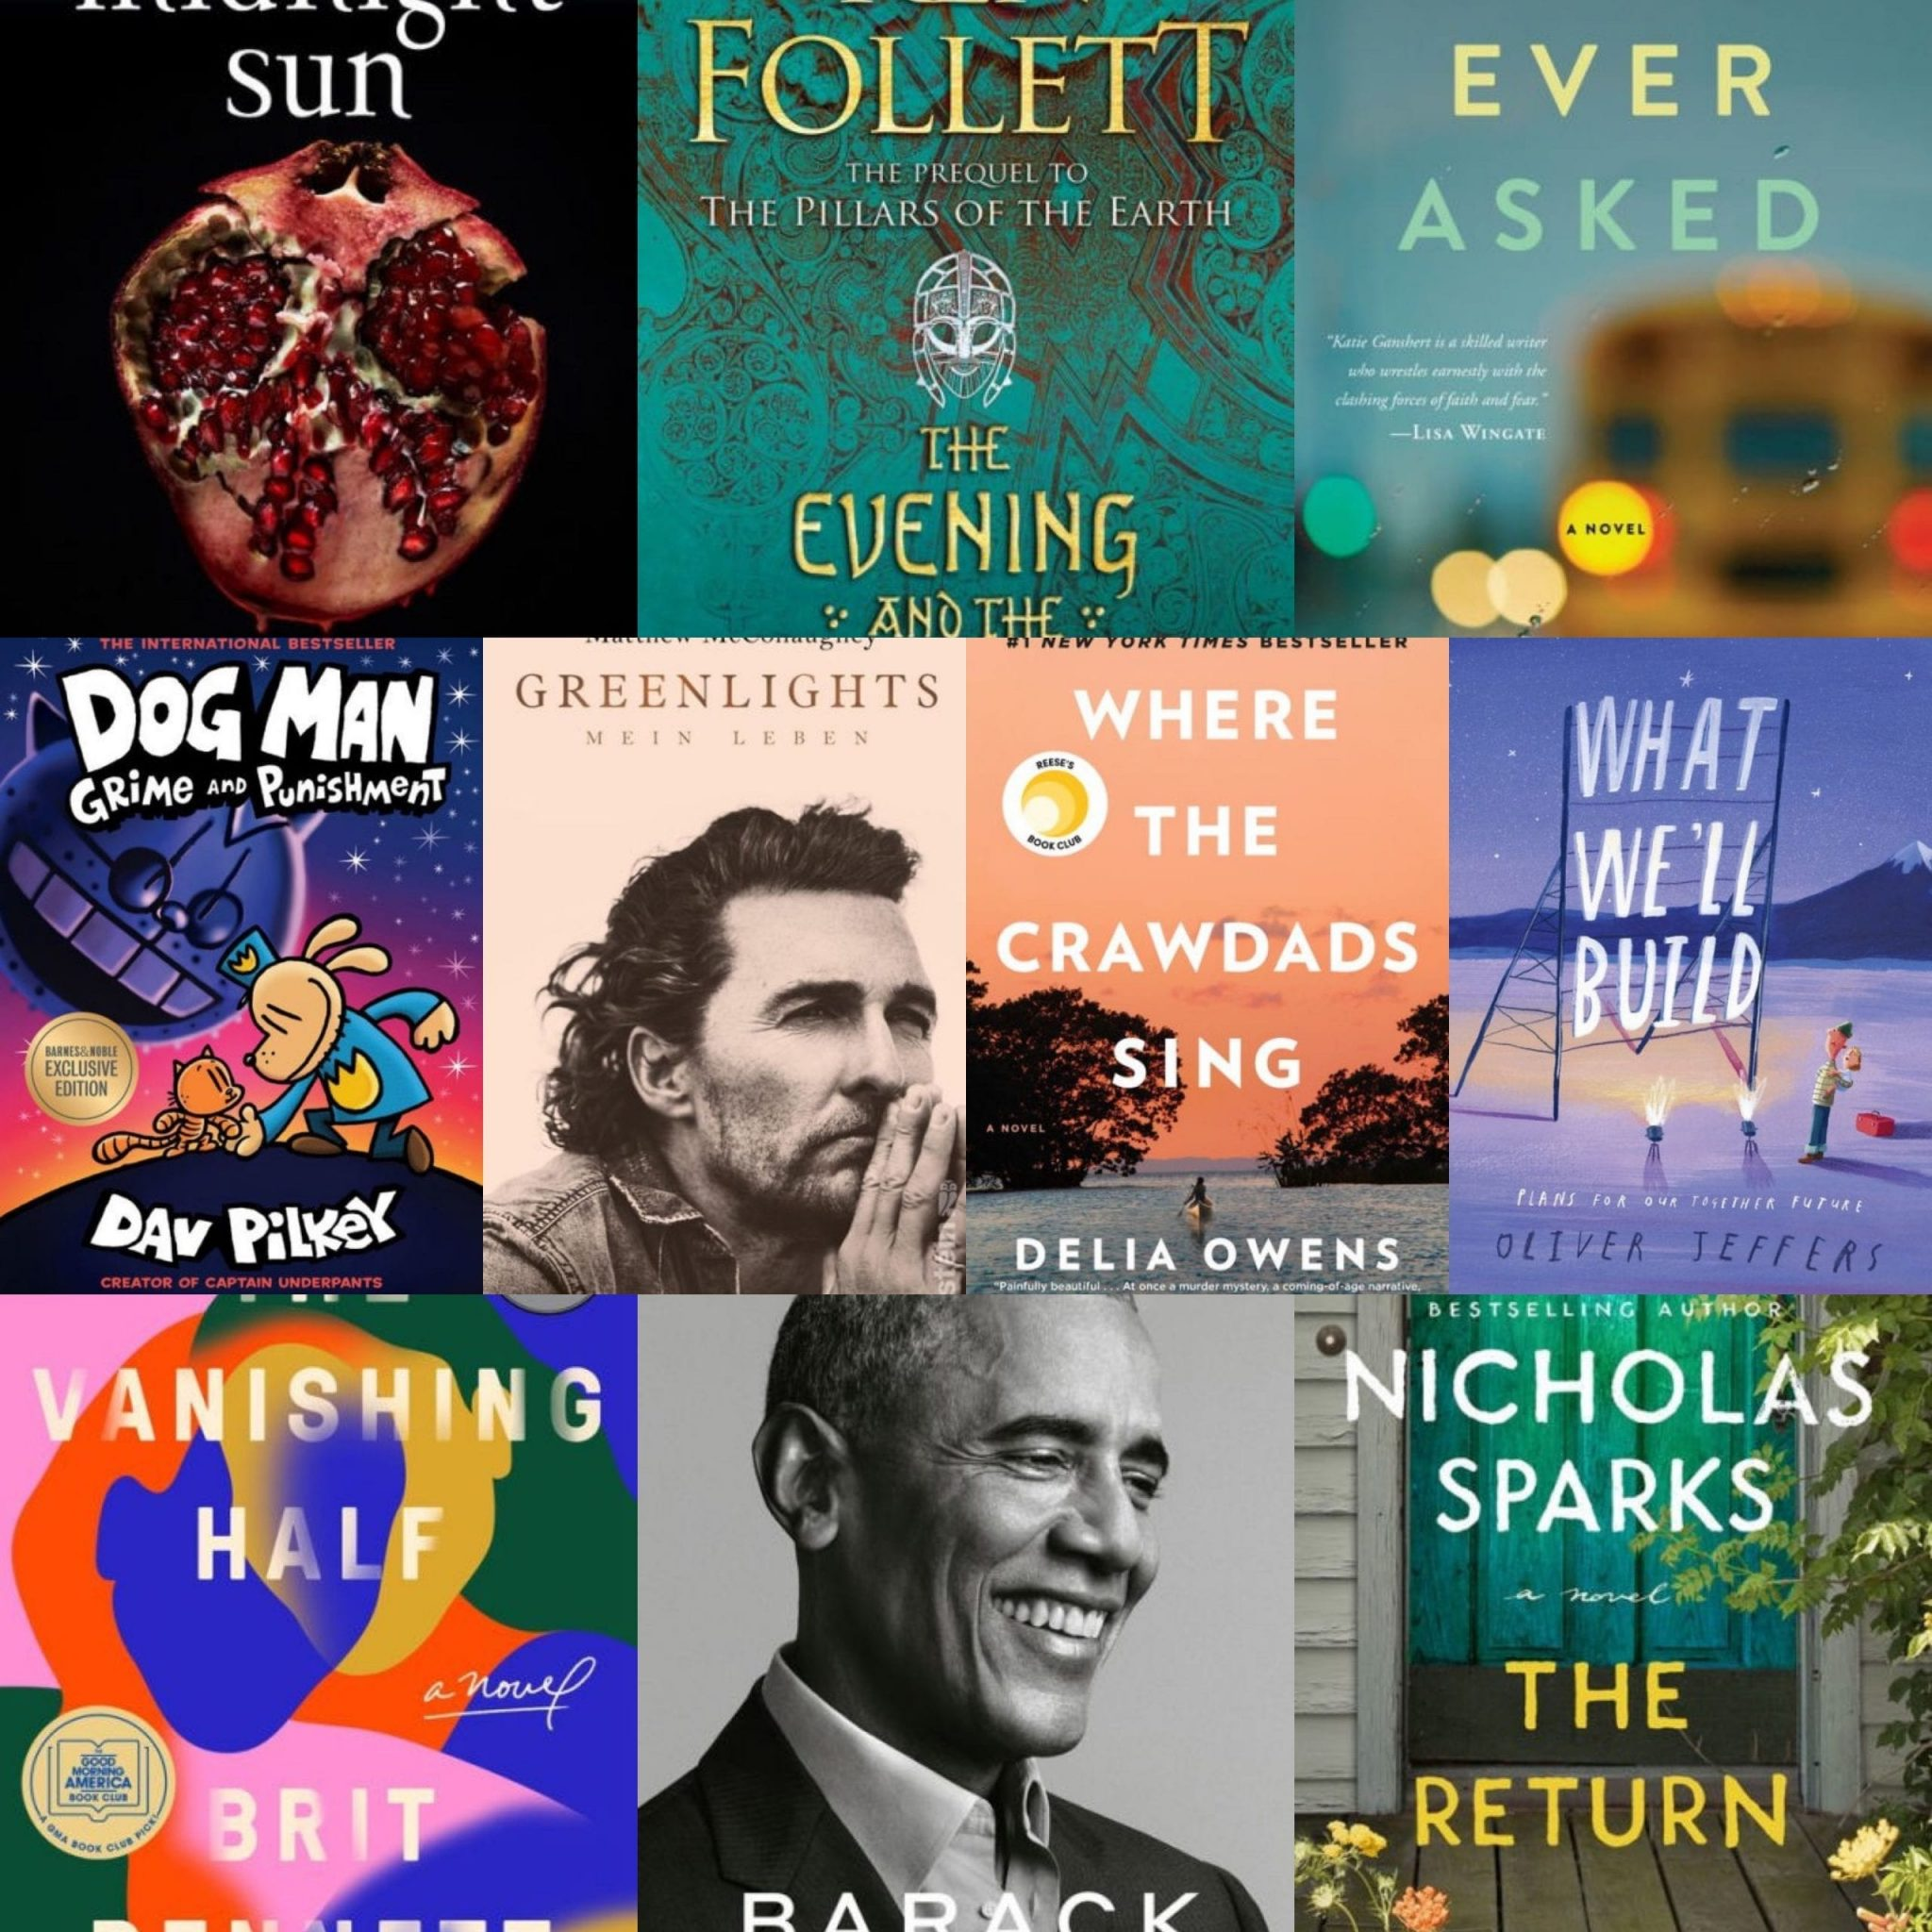 10 Top Selling Books in 2020